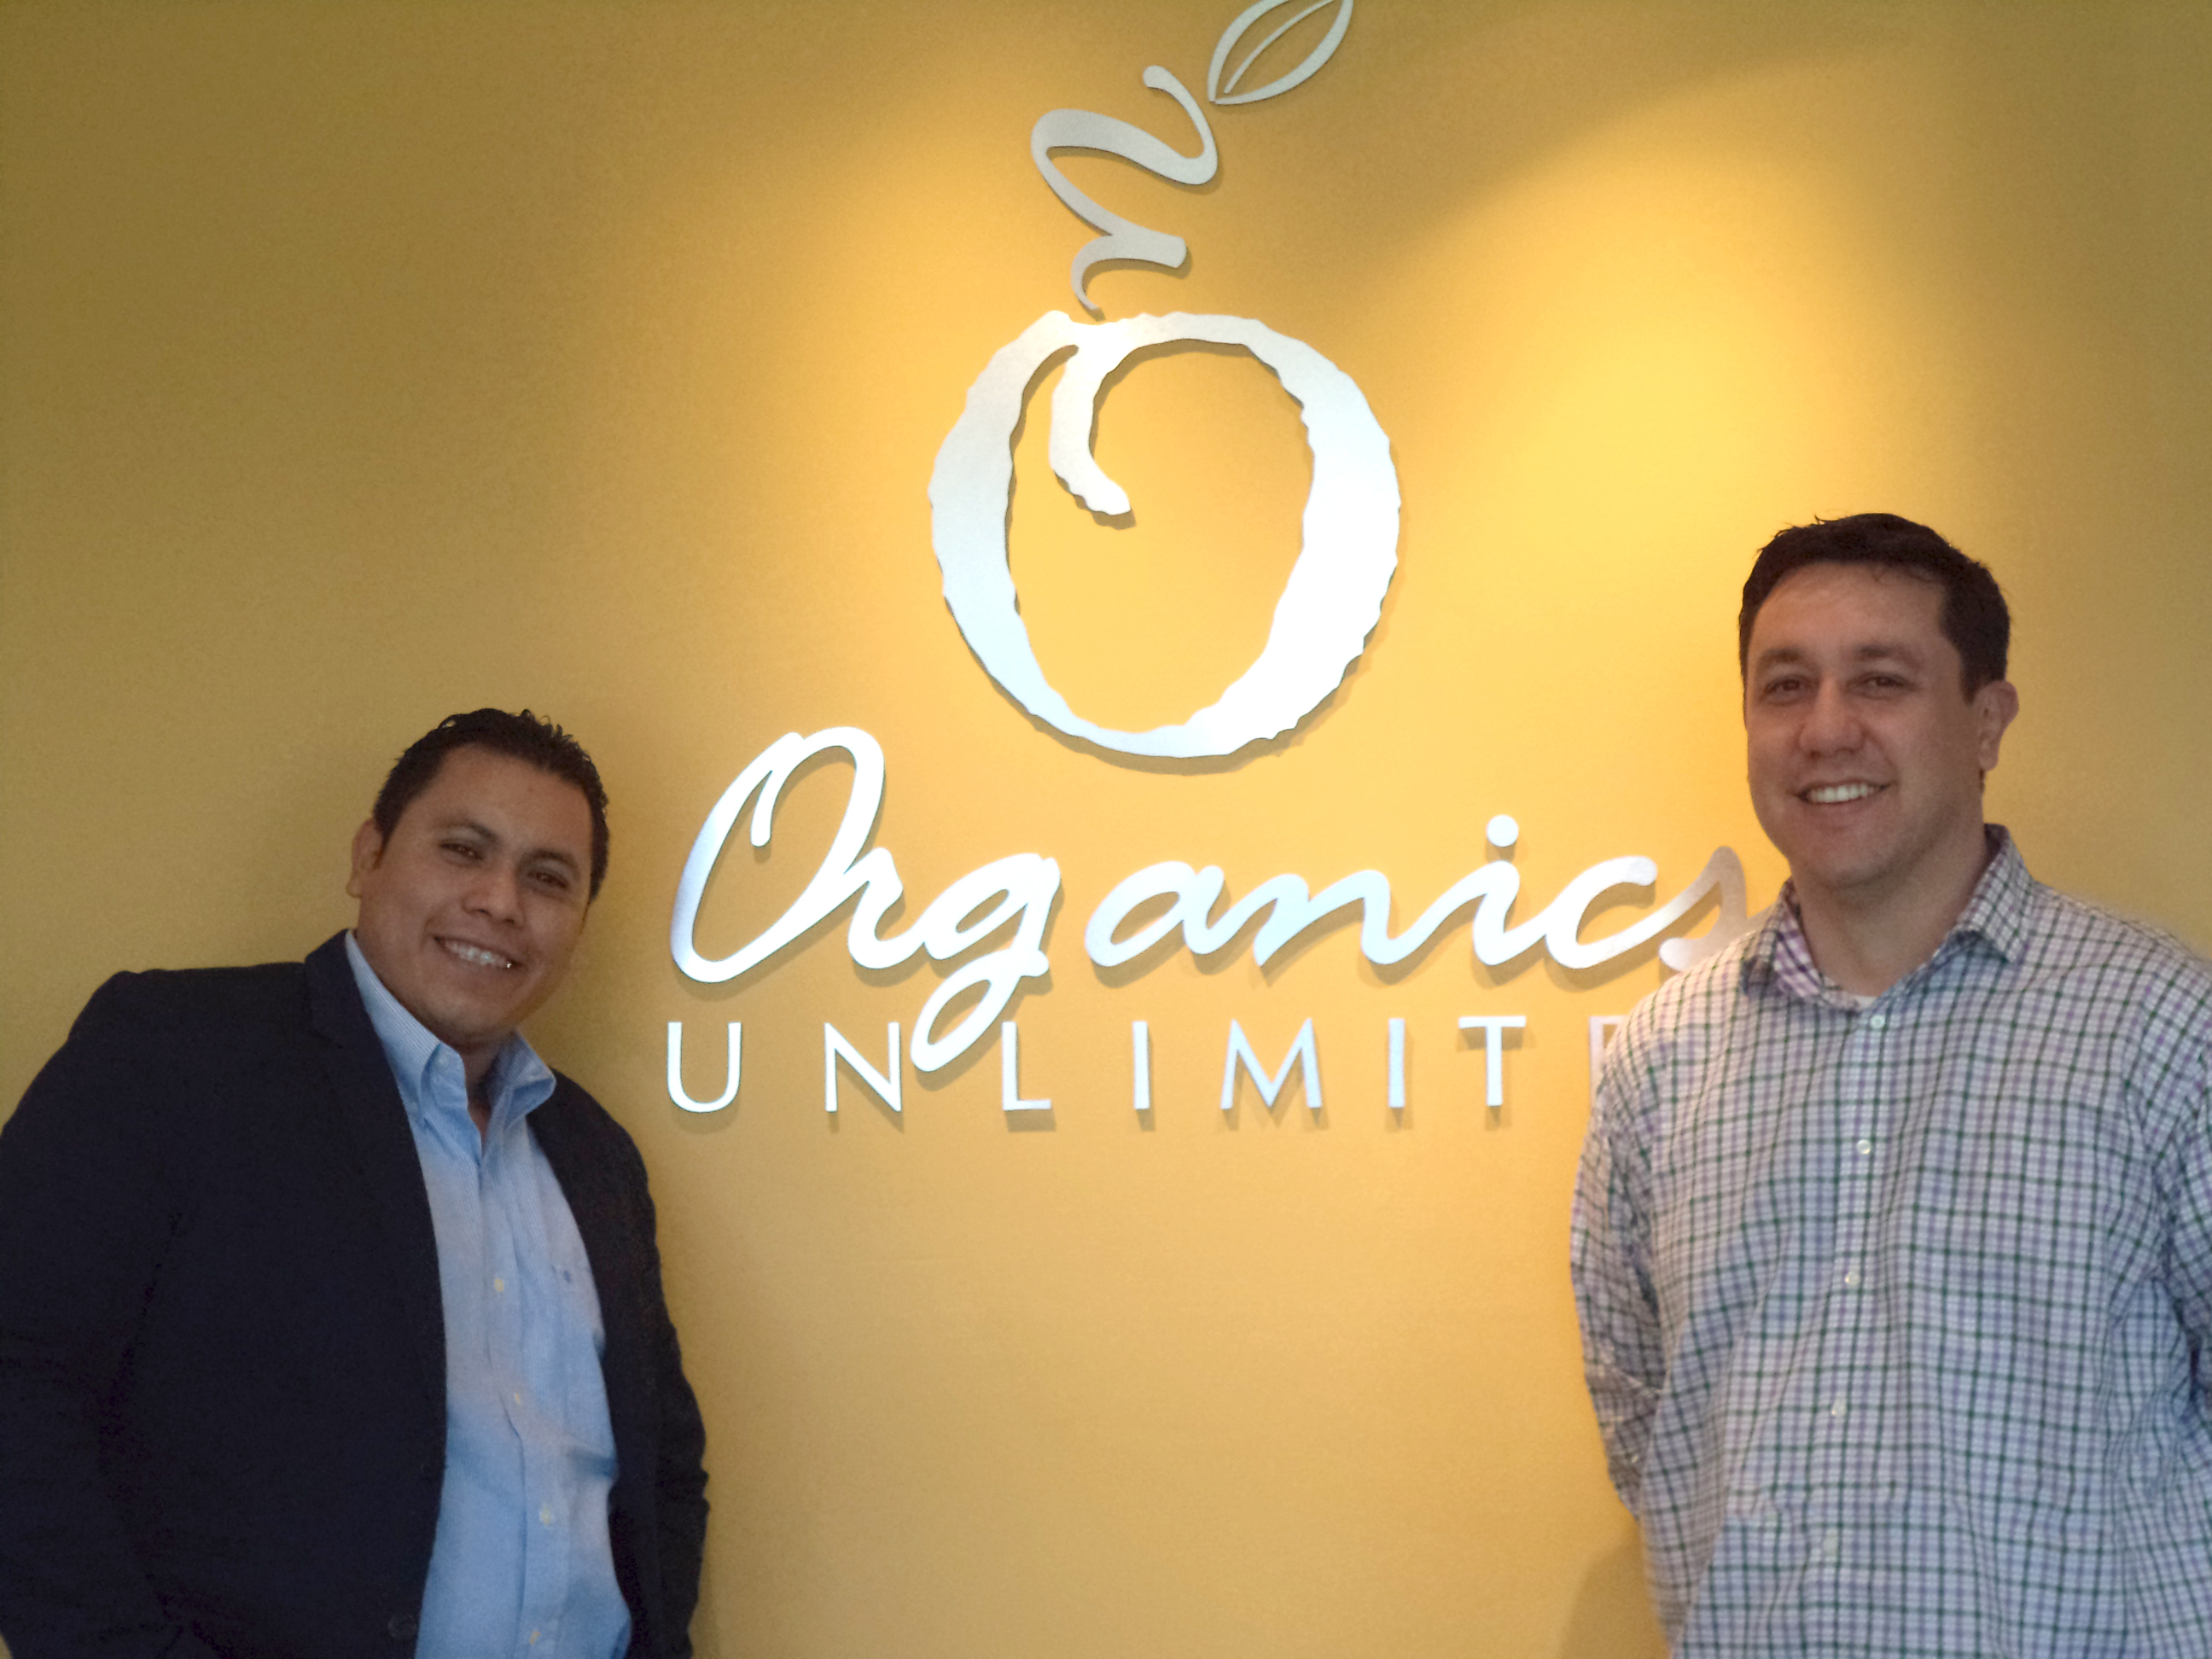 OU Bananas – Marco Garcia (Left) and George Pazos (Right)